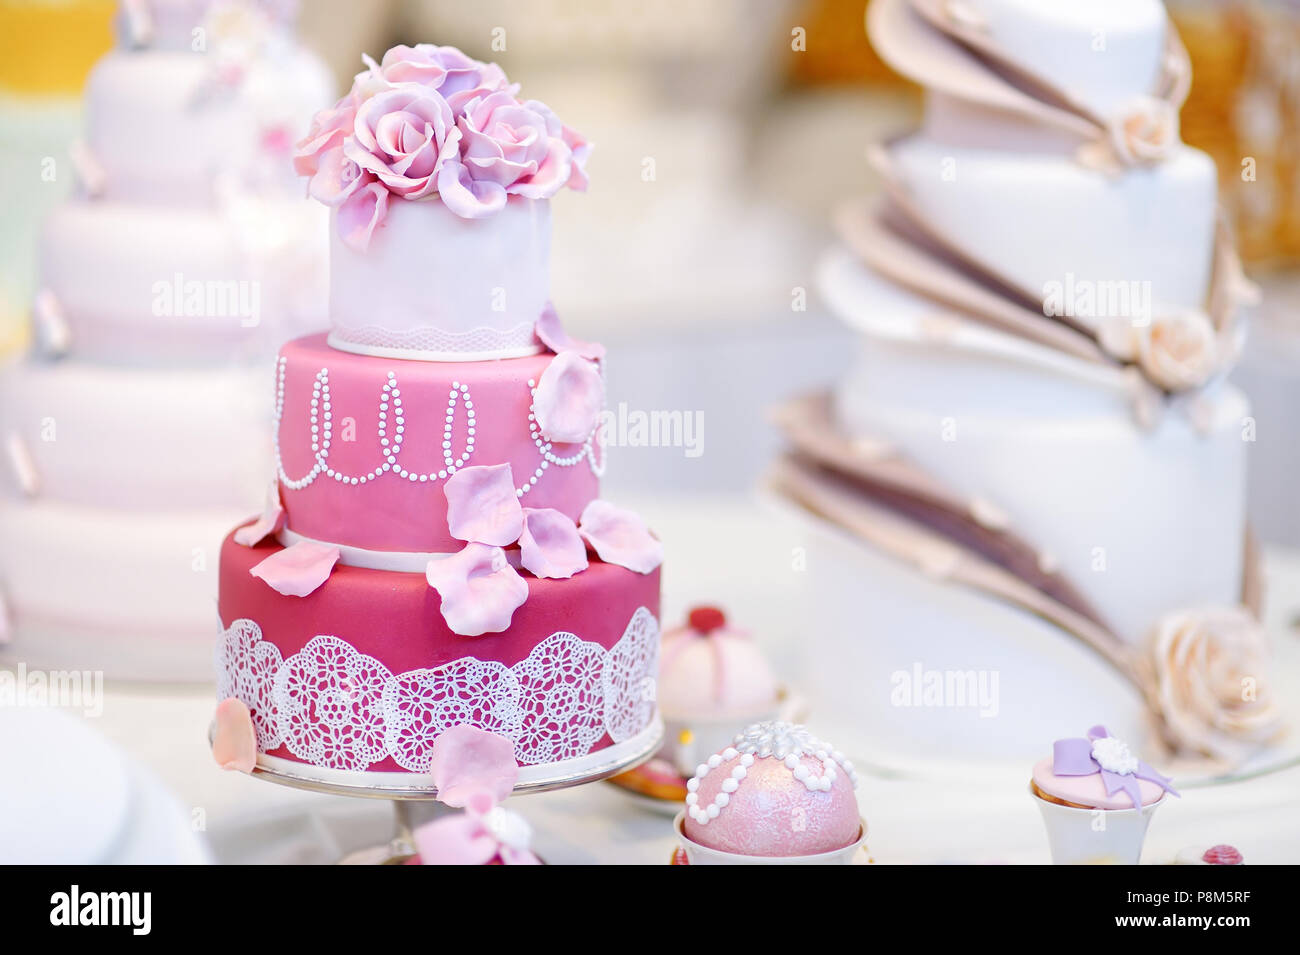 White Wedding Cake Decorated With Pink Sugar Flowers Stock Photo